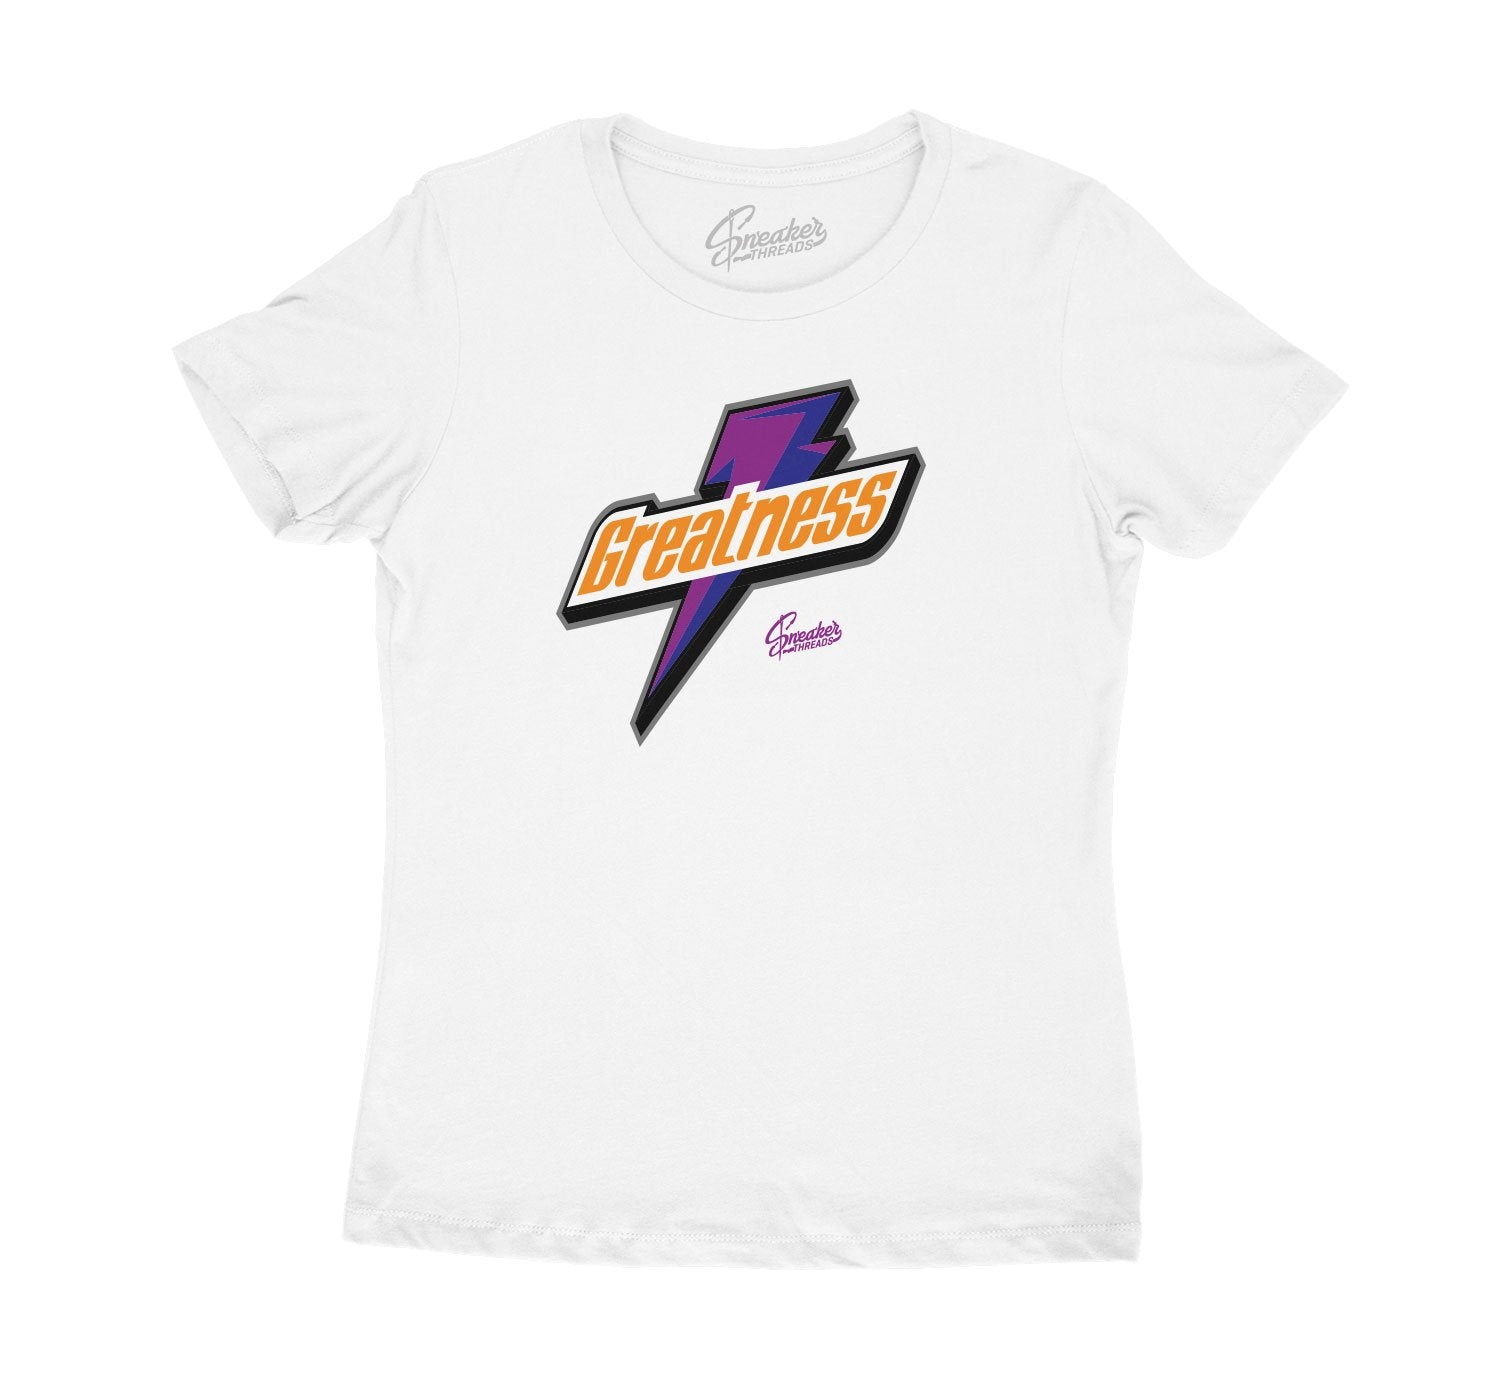 Sneaker Jordan 4 rush violet matching womens tee collection